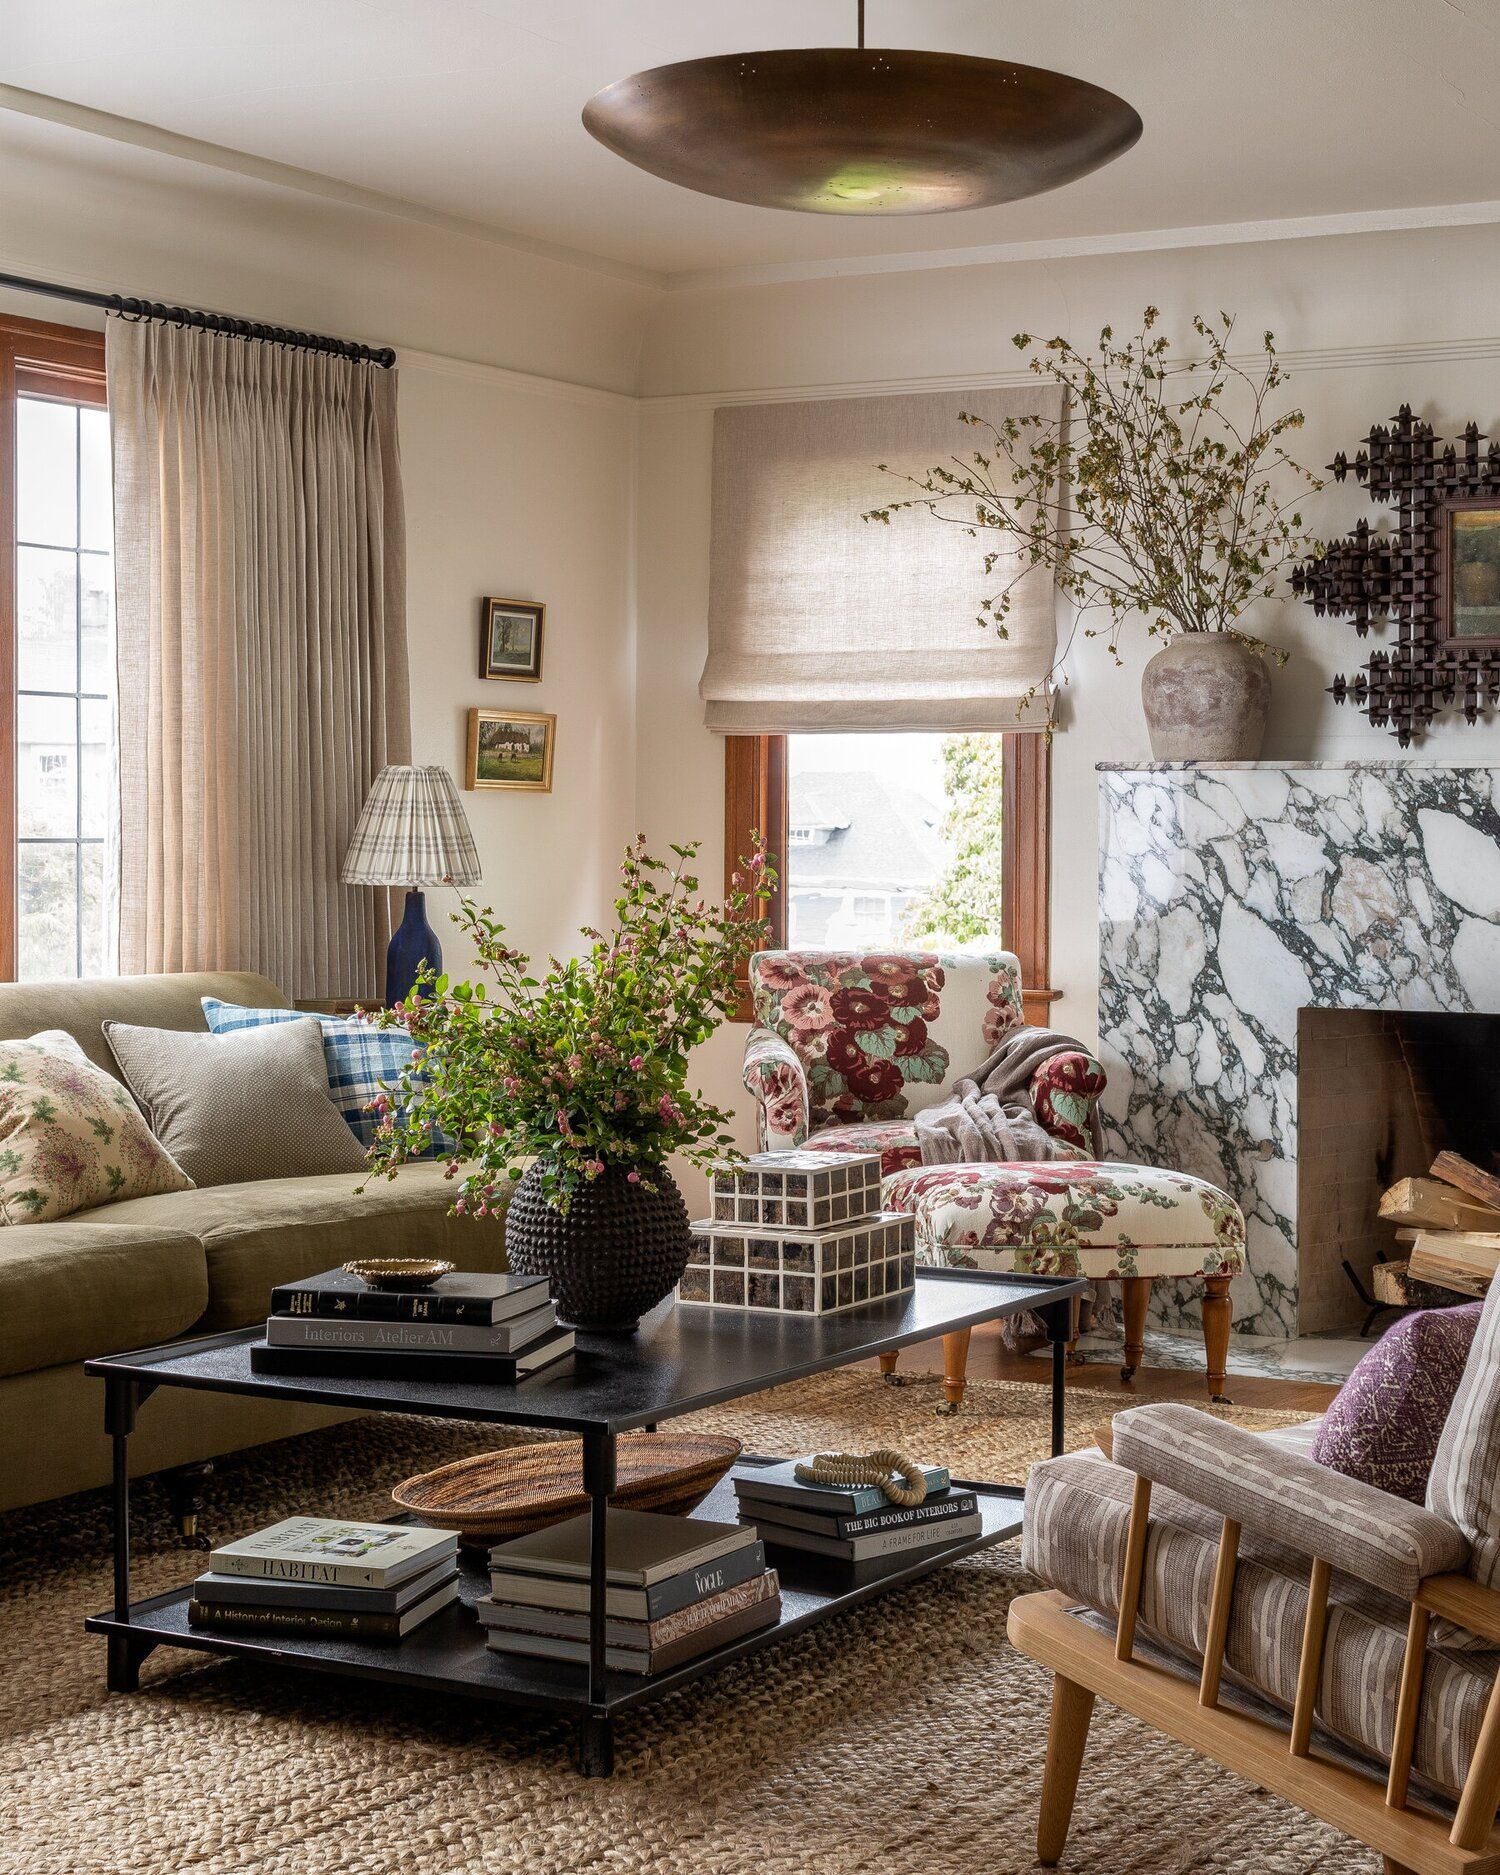 Home Tour In 2020 Living Room Designs Paint Colors For Living